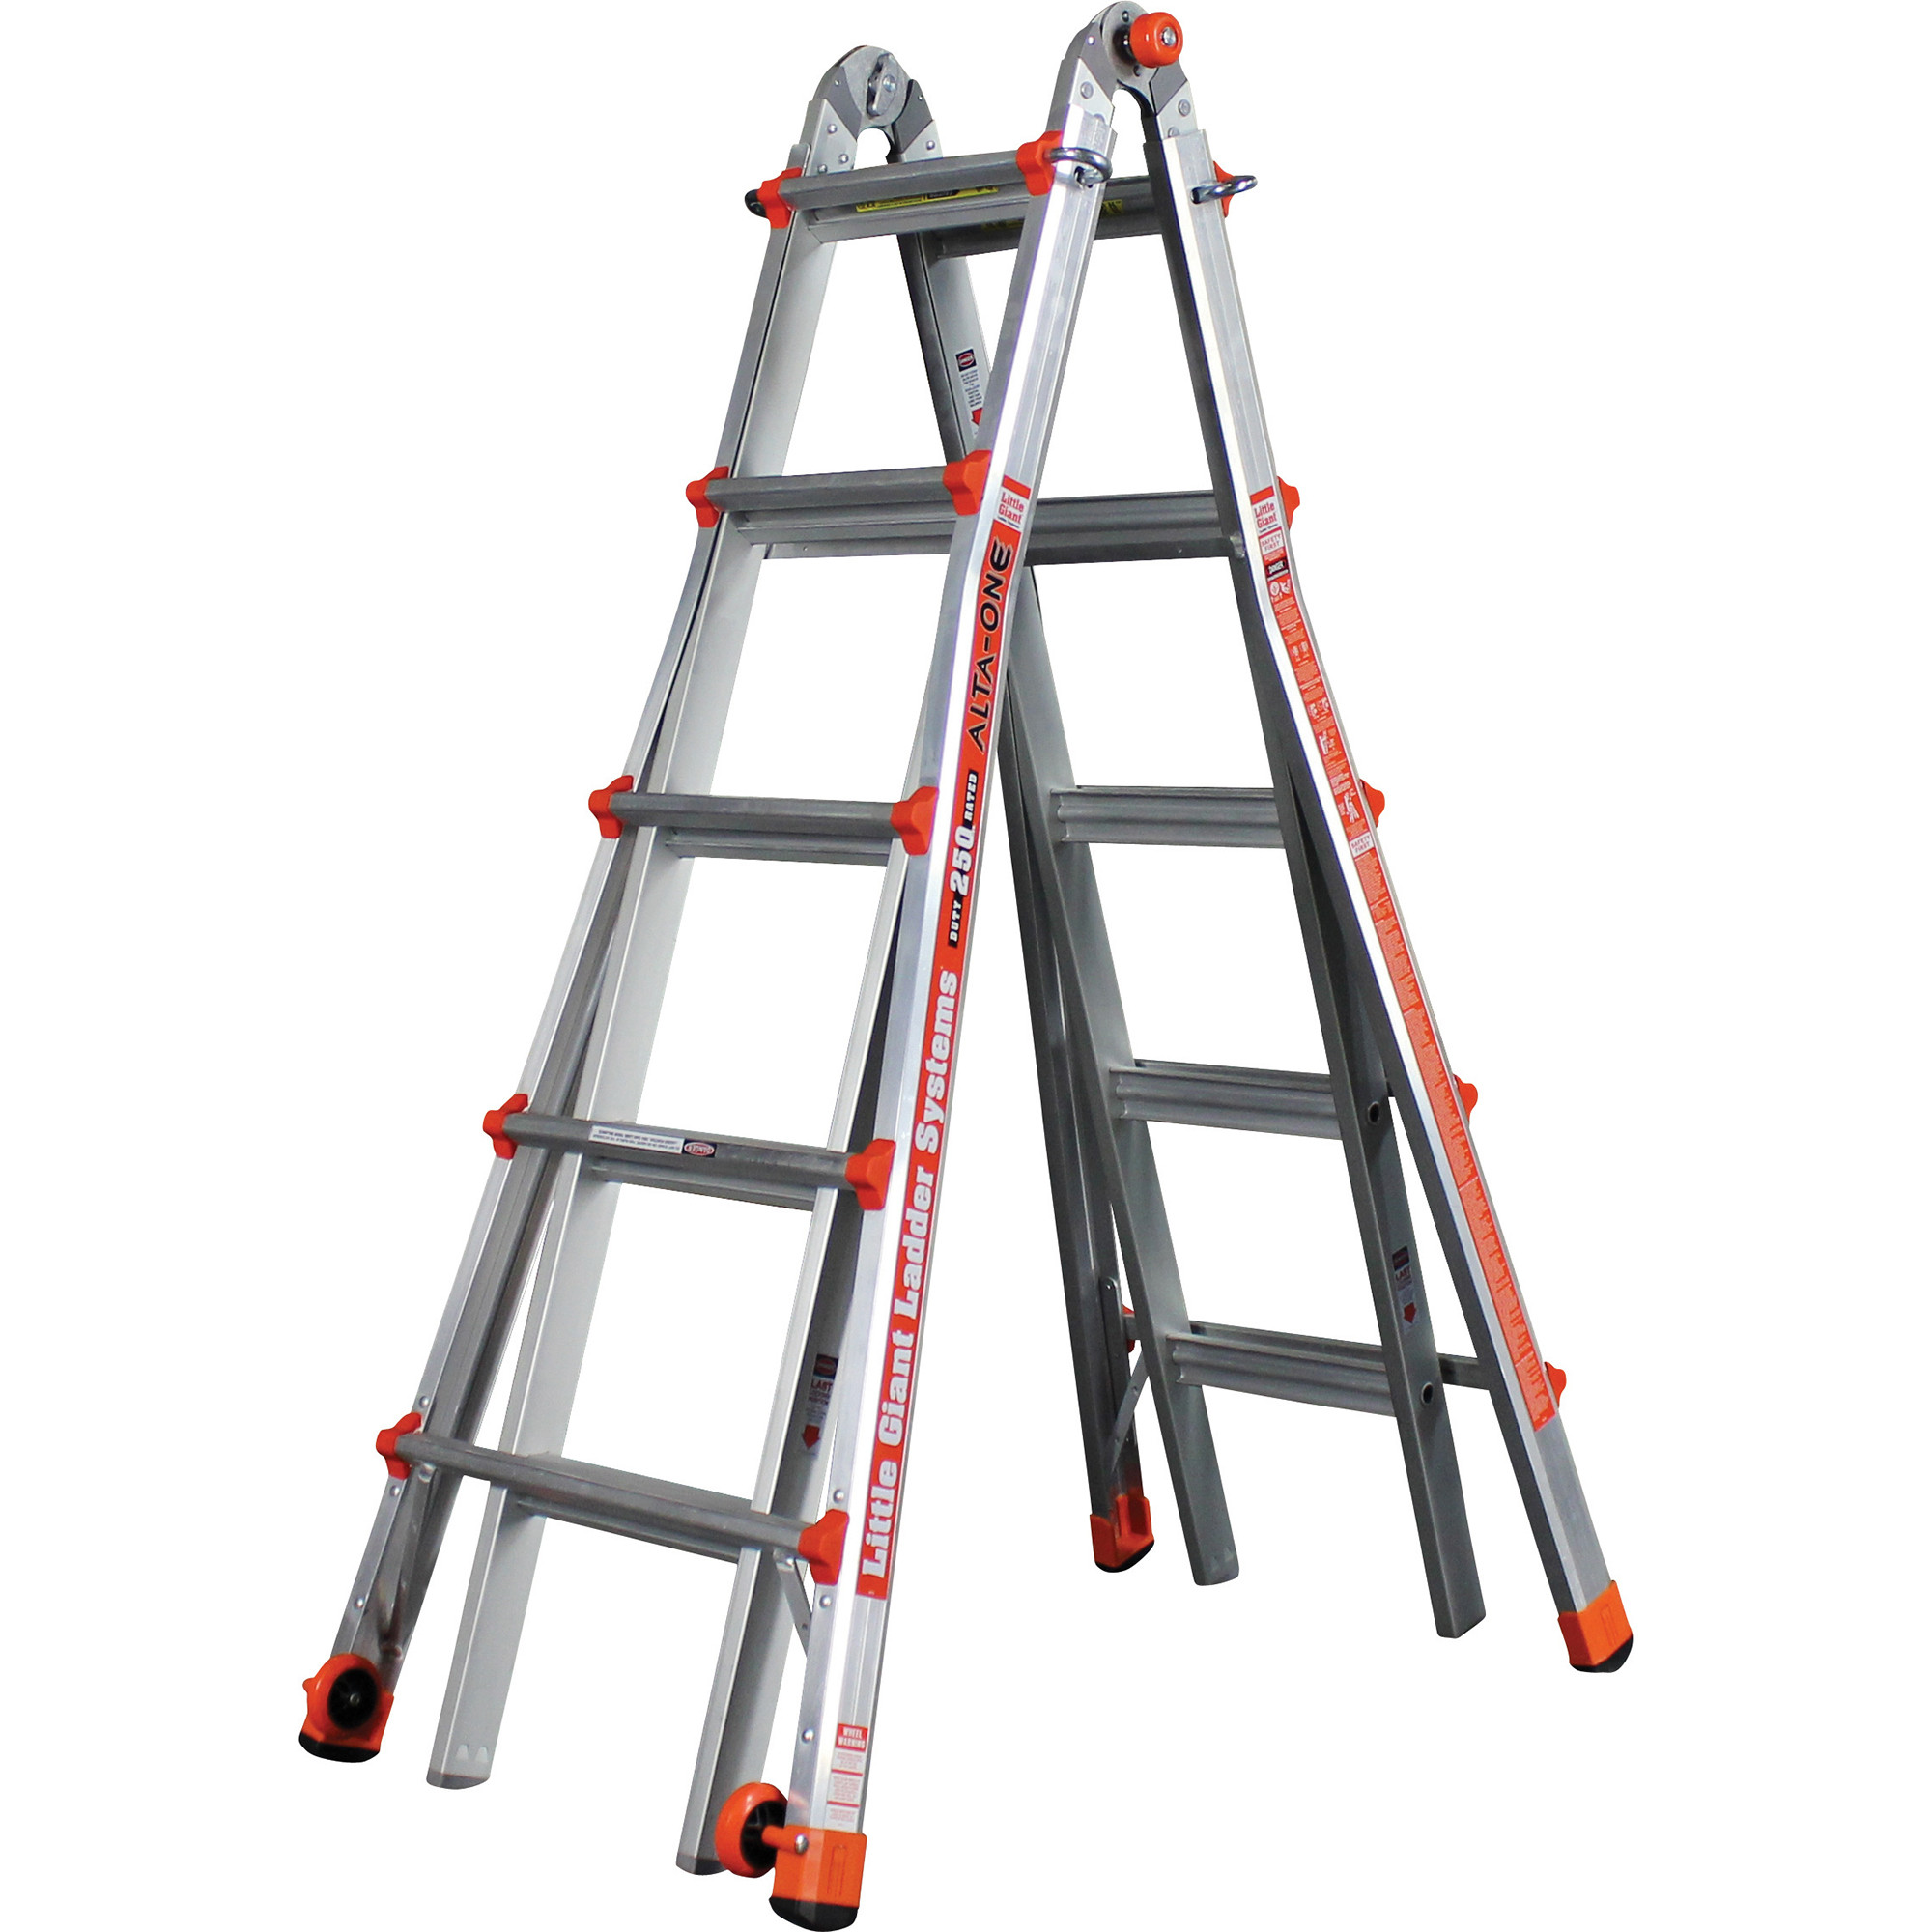 Little Giant Alta One 22 Extension Ladder Walmart Com